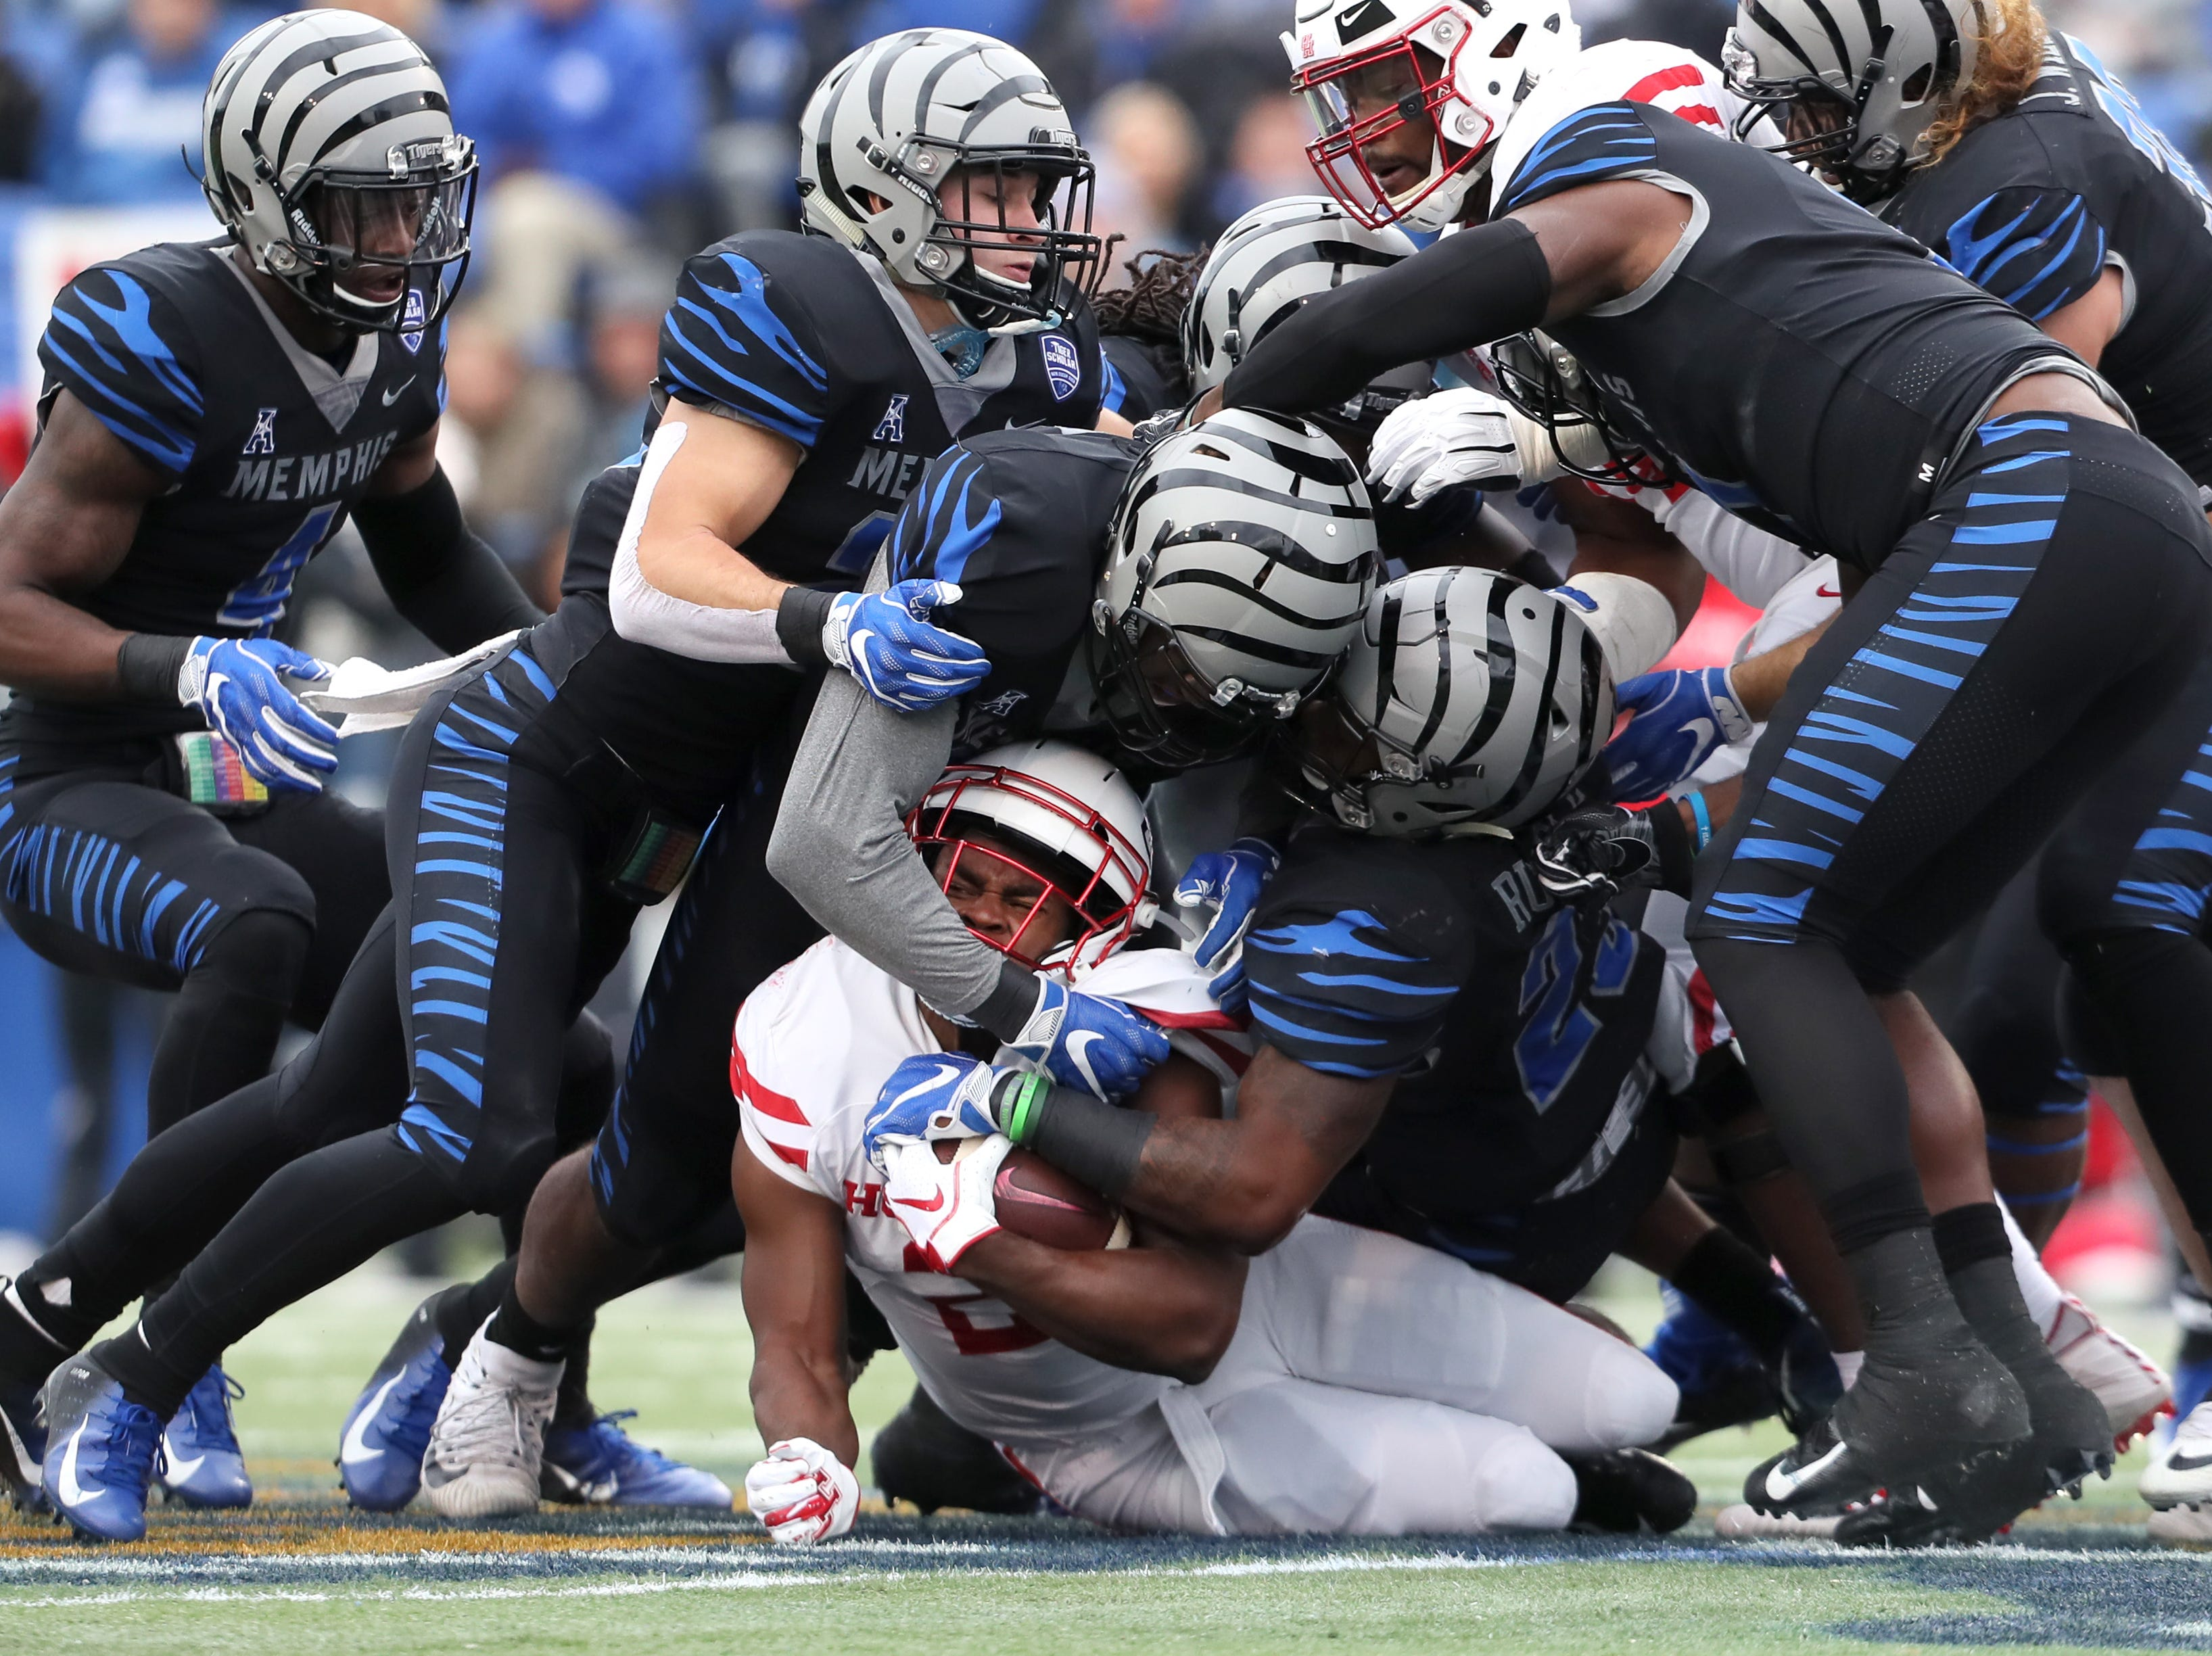 Houston Cougars' Patrick Carr is gang tackled by Memphis Tigers defense, including J.J. Russell (23) at the Liberty Bowl on Friday, Nov. 23, 2018.